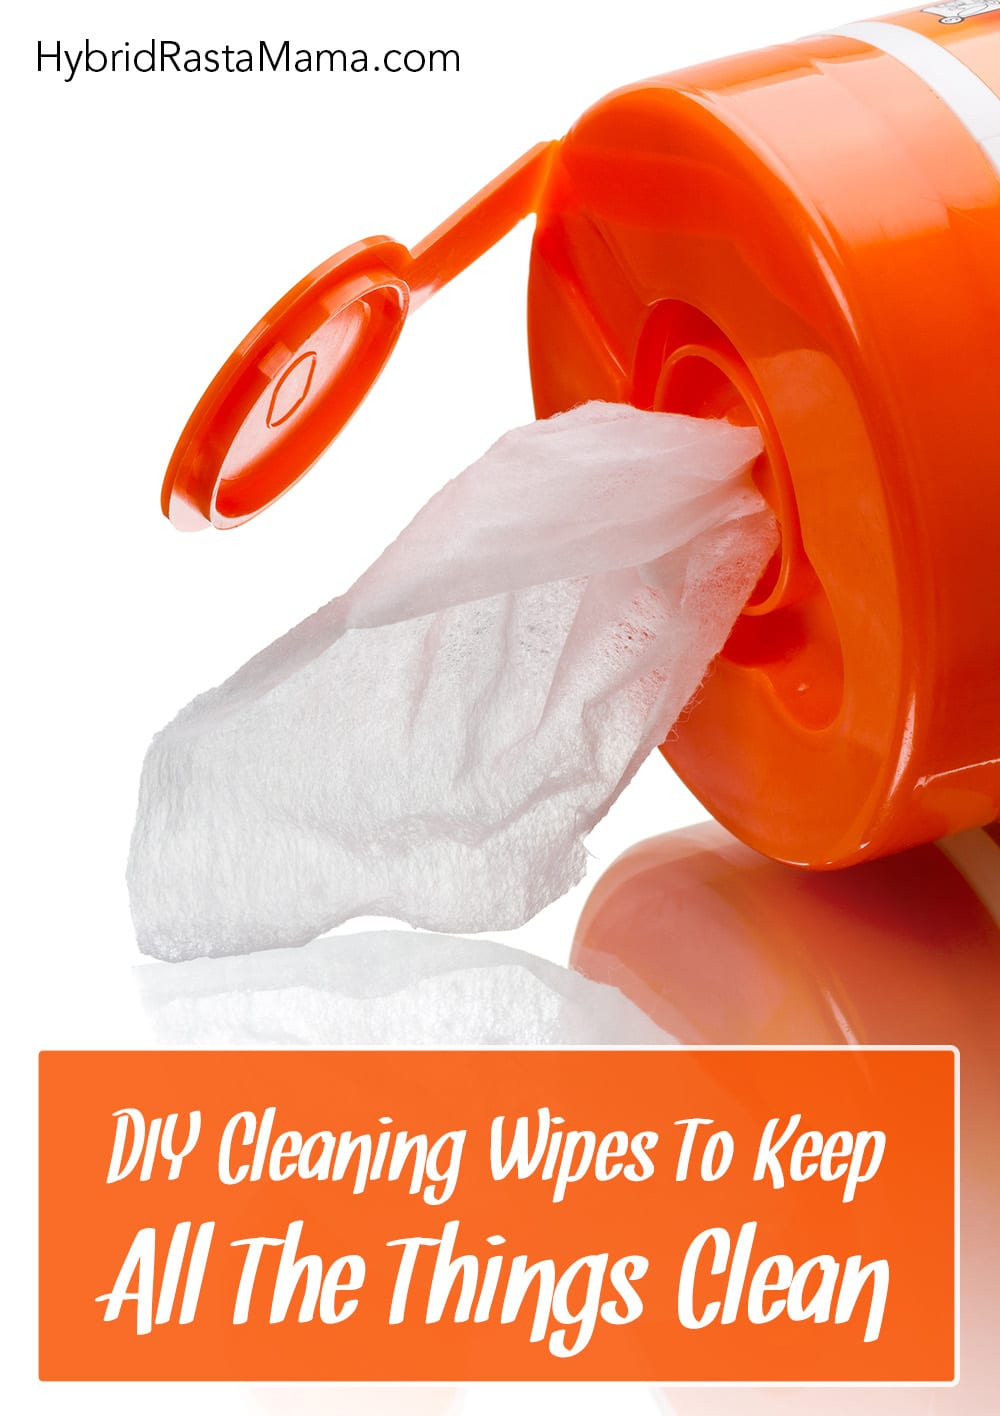 DIY Disinfecting Wipes For COVID 19 (Coronavirus)